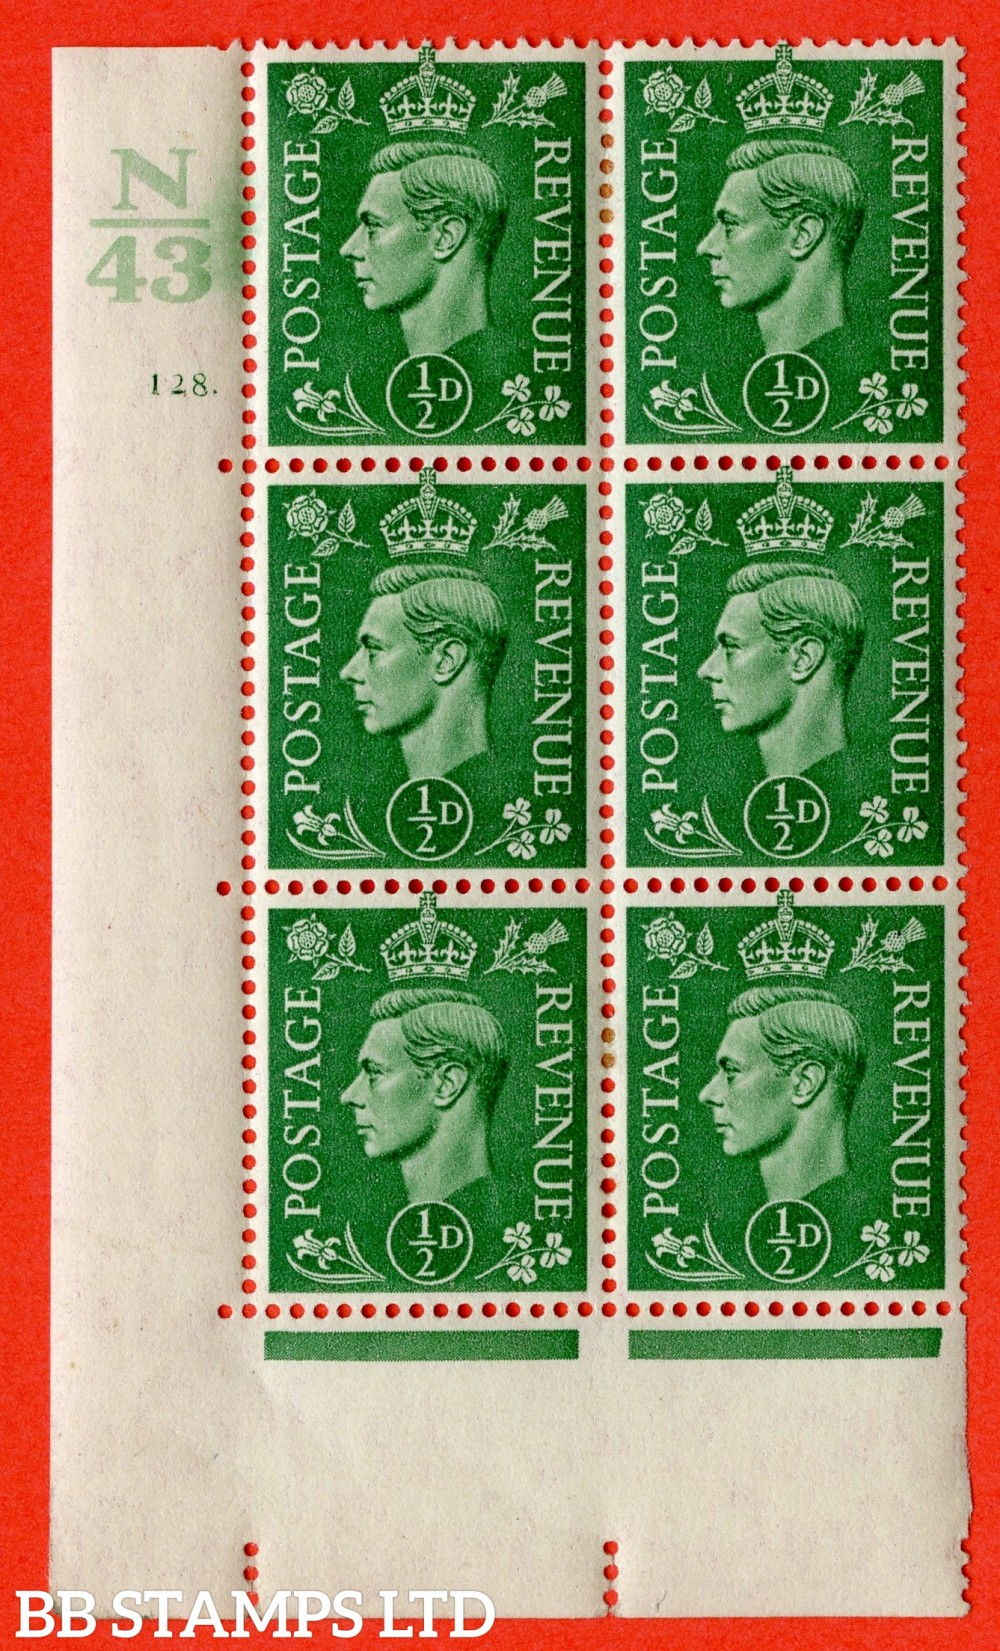 "SG. 485. Q2. ½d Pale Green. A very fine lightly mounted mint "" Control N43 cylinder 128 dot "" block of 6 with perf type 5 E/I with marginal rule."